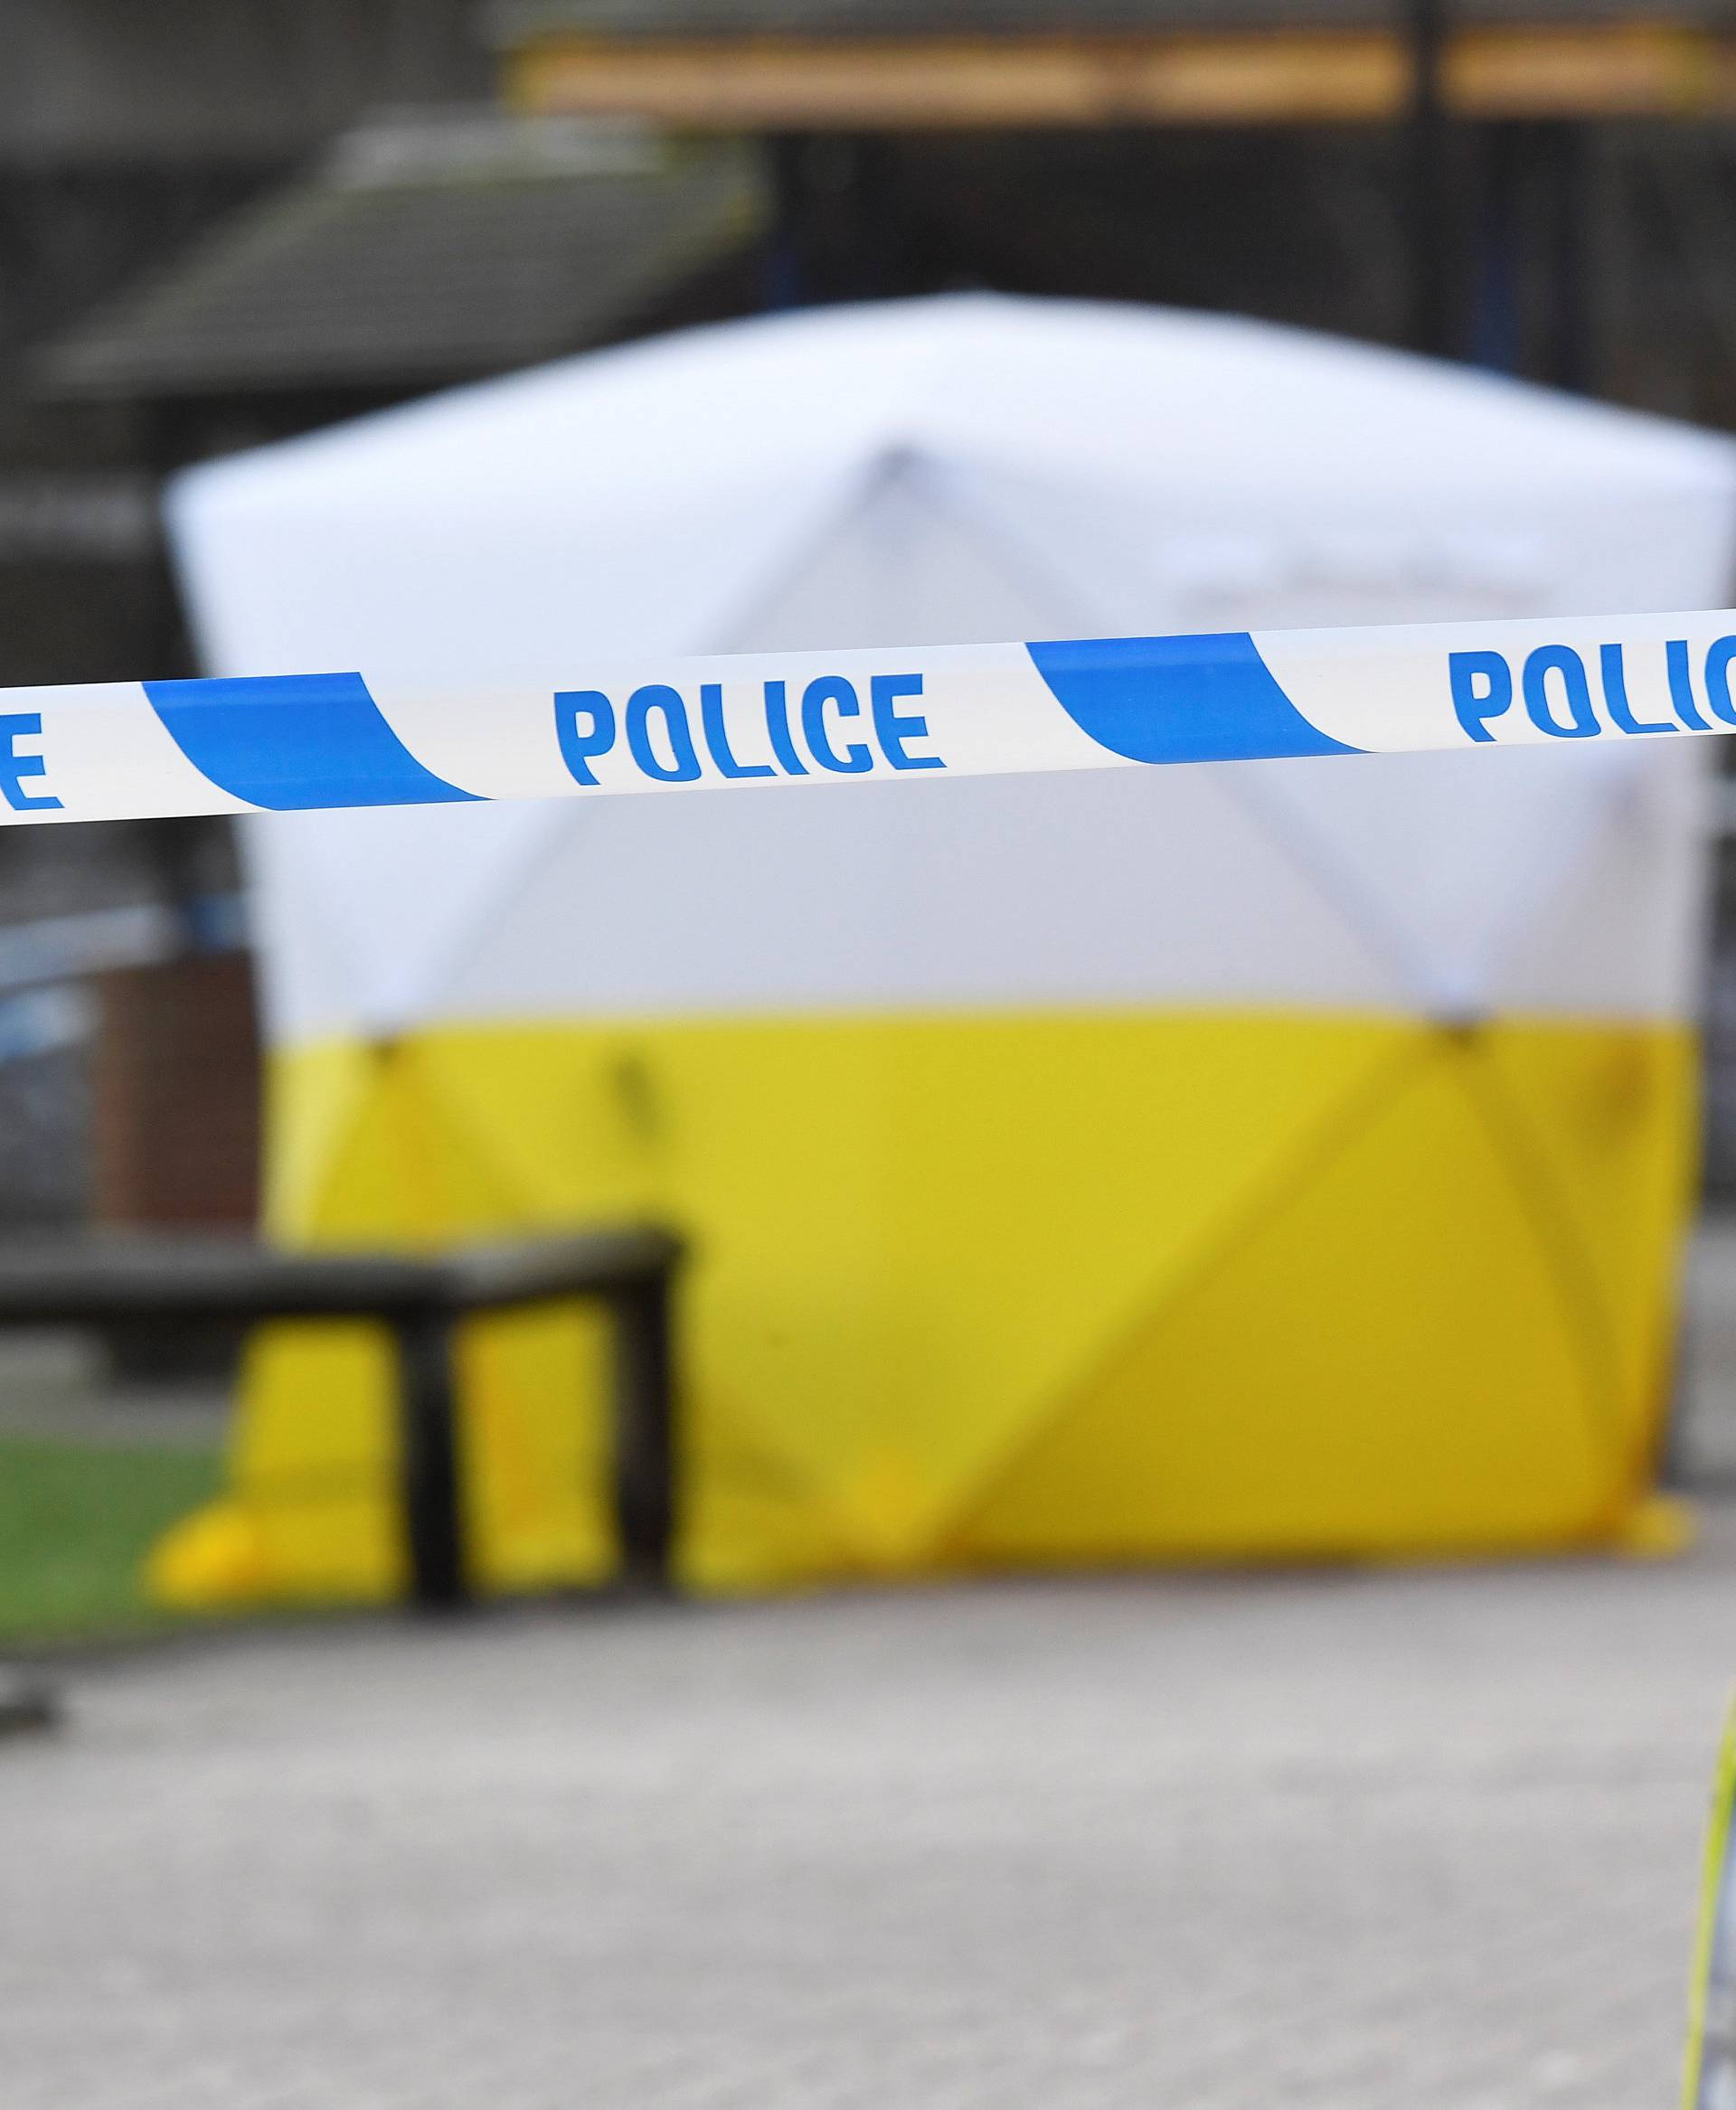 A police car is parked next to crime scene tape, as a tent covers a park bench on which former Russian inteligence officer Sergei Skripal, and a woman were found unconscious after they had been exposed to an unknown substance, in Salisbury